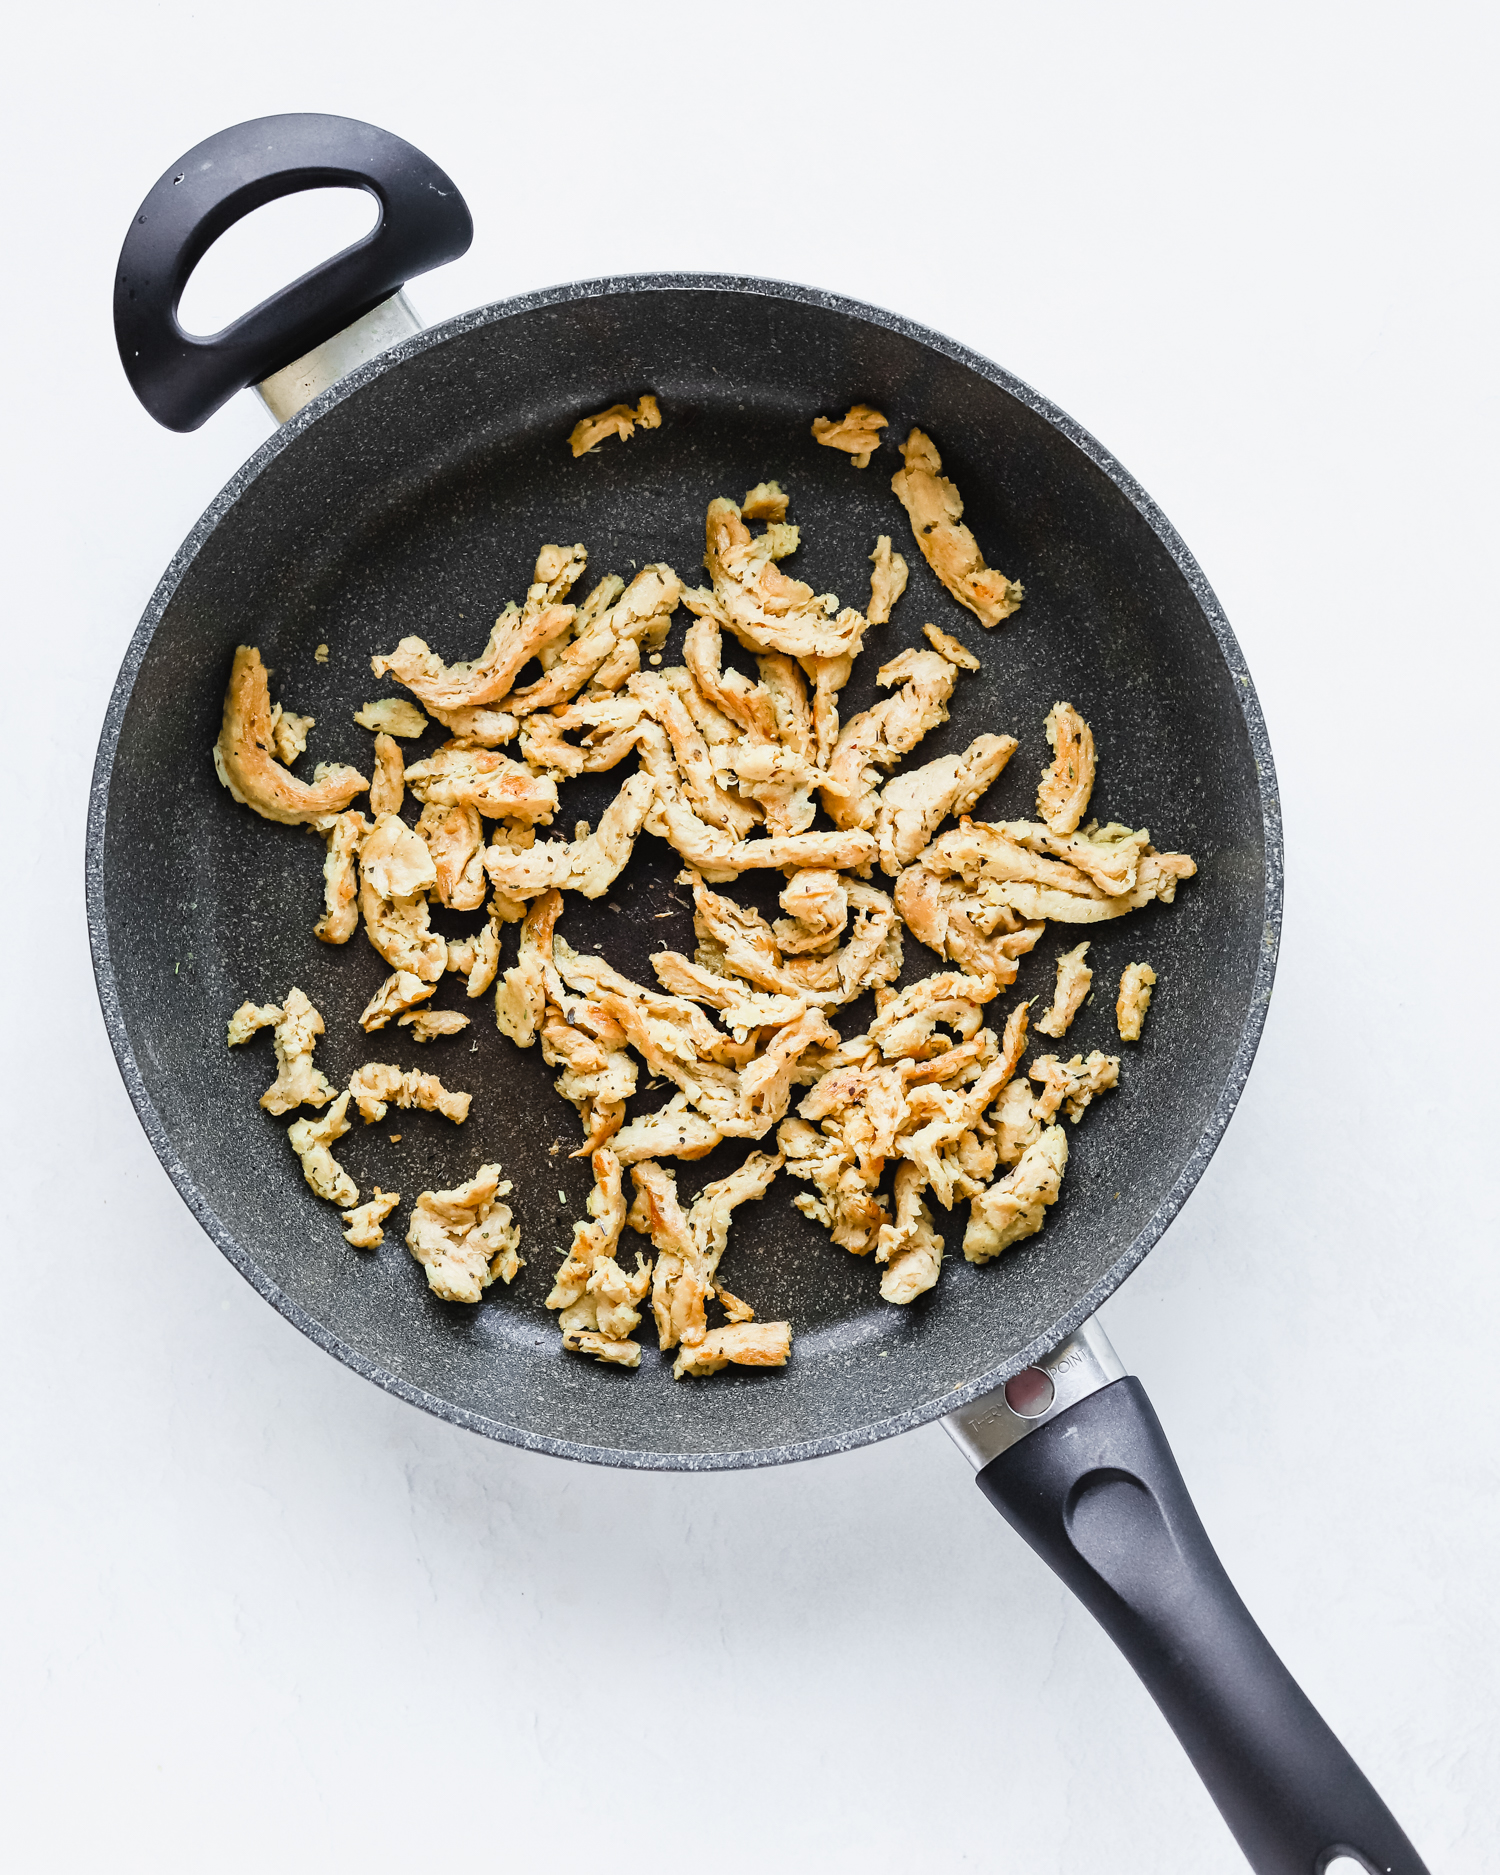 Soy curls sautéing in a pan with italian seasoning.